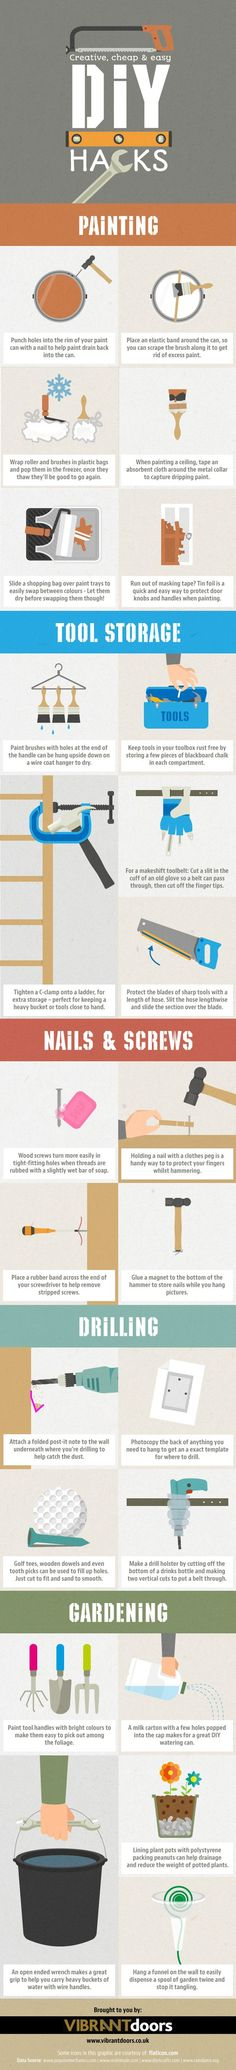 Quick DIY Tips, Tricks and Life Hacks for Home Improvement Problems | Vibrant Doors Blog